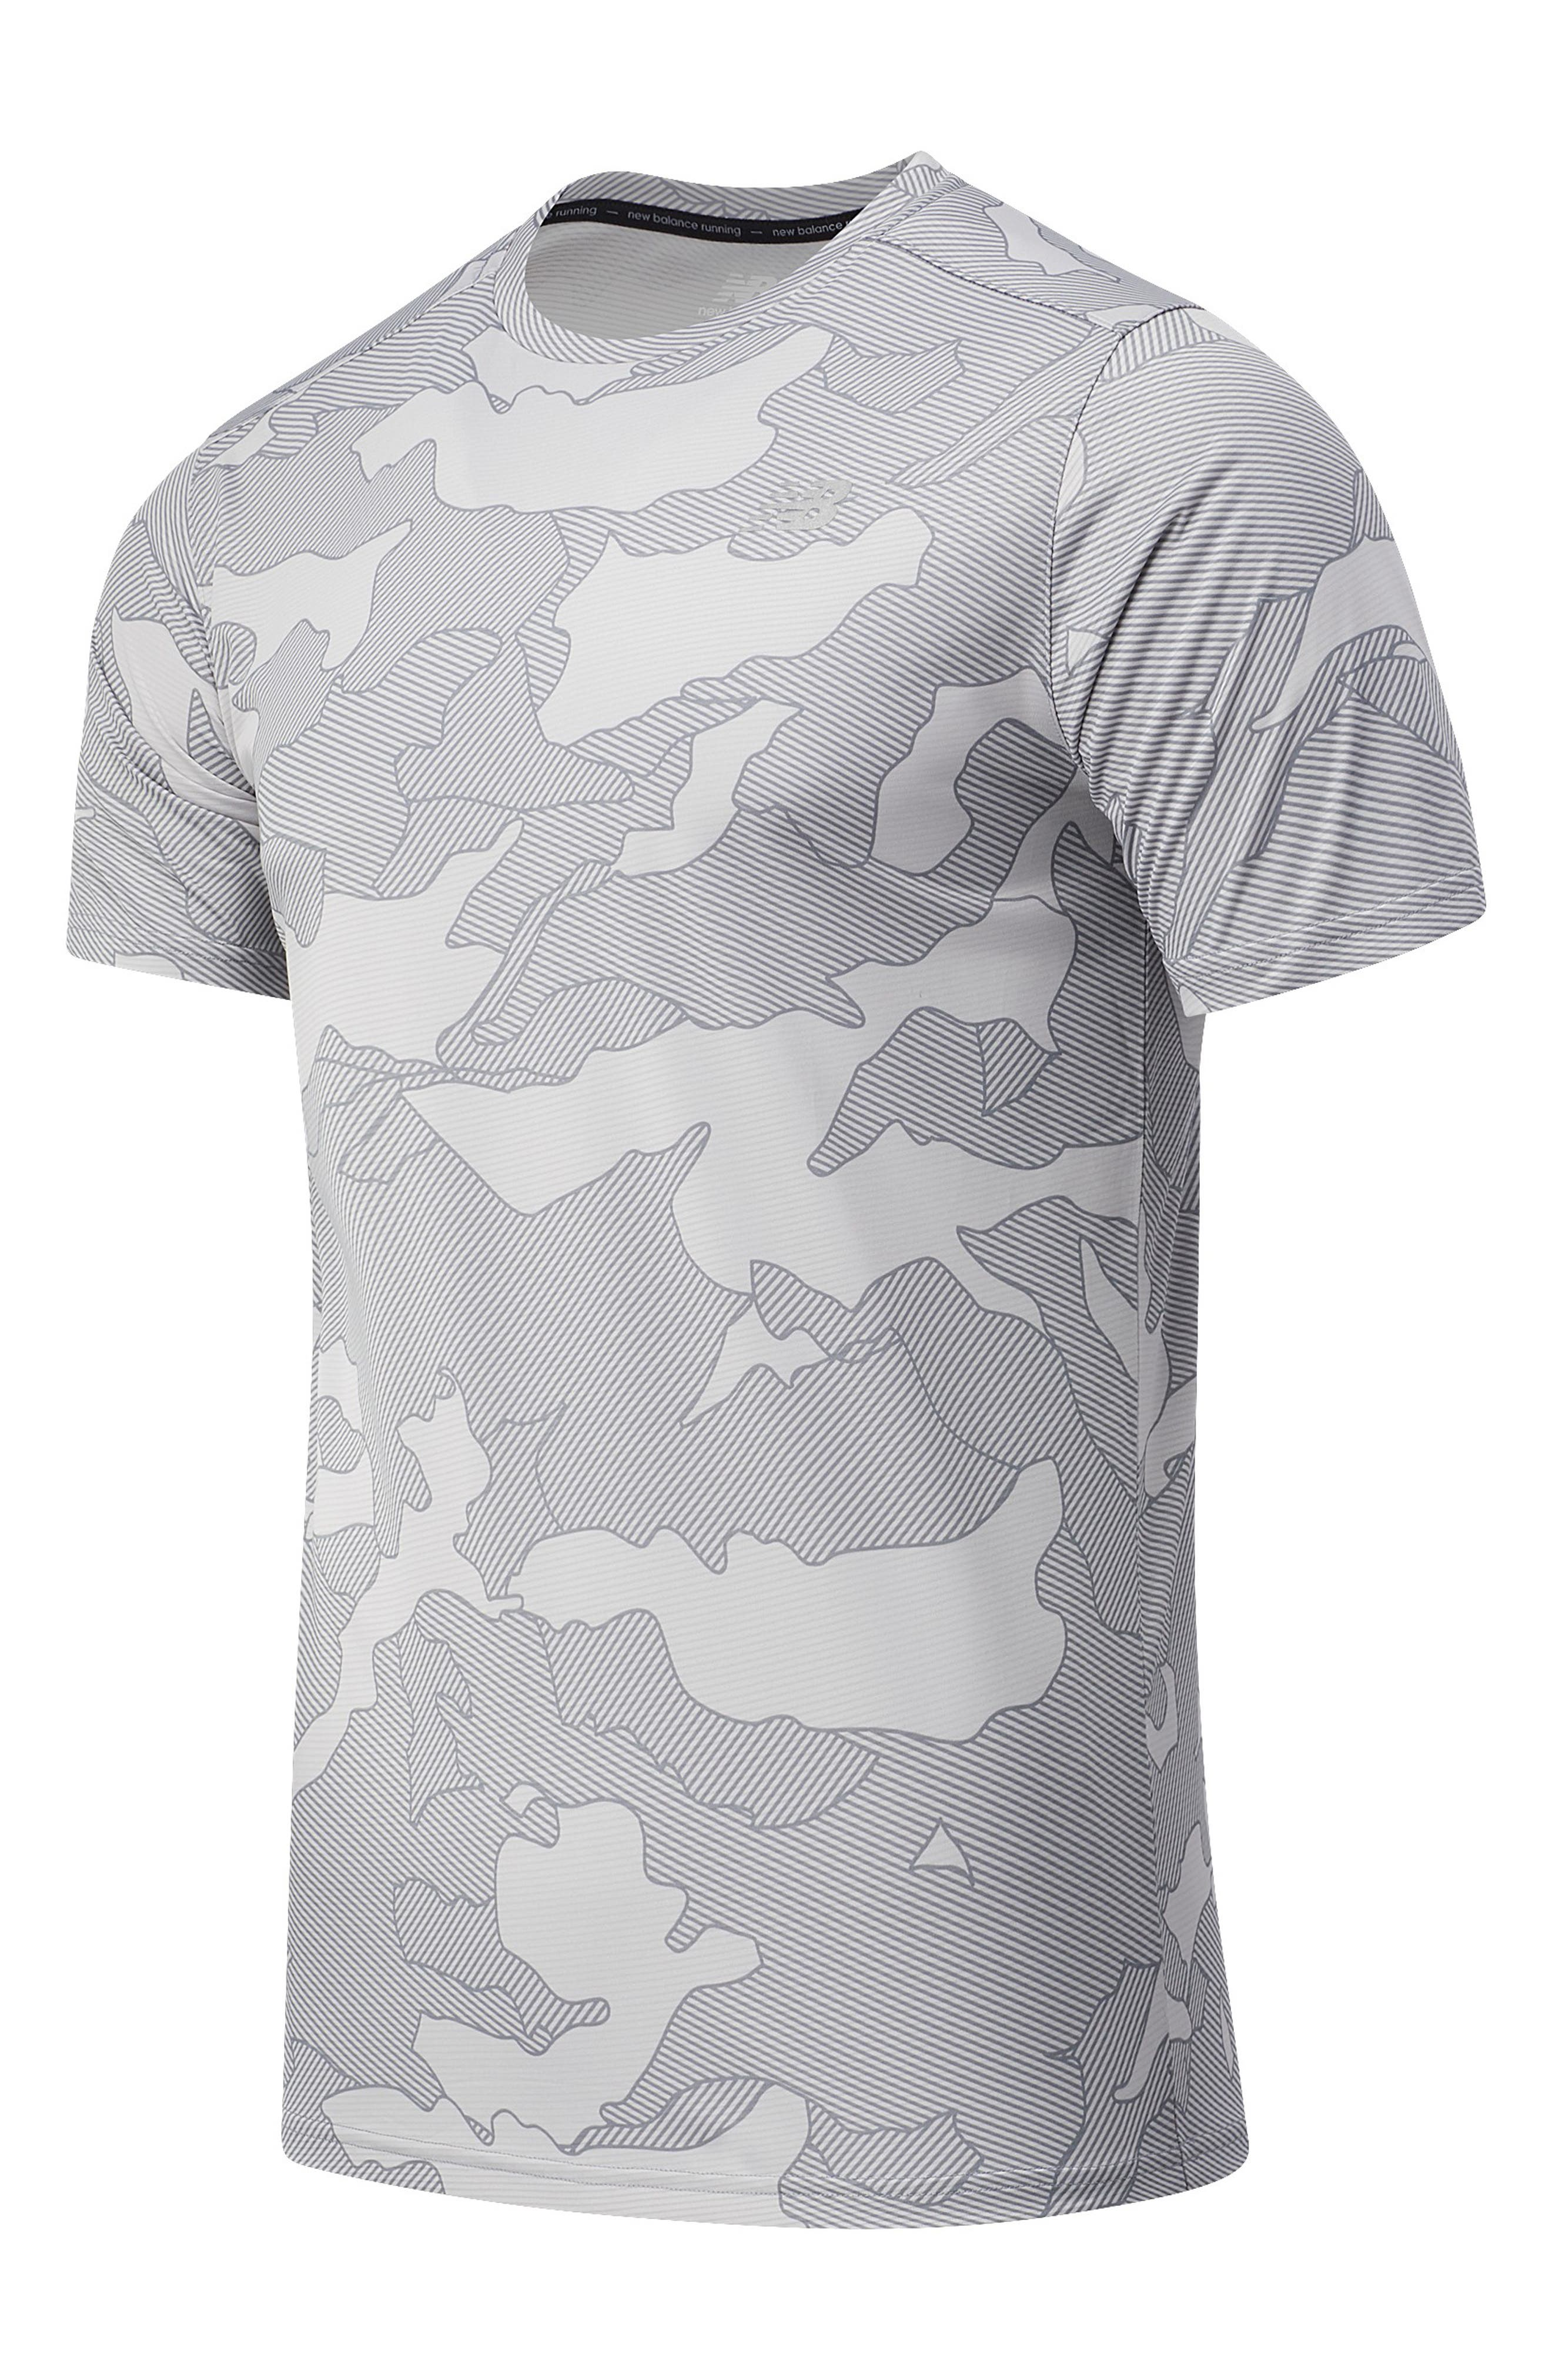 Image of New Balance Printed Accelerate Short Sleeve Tee